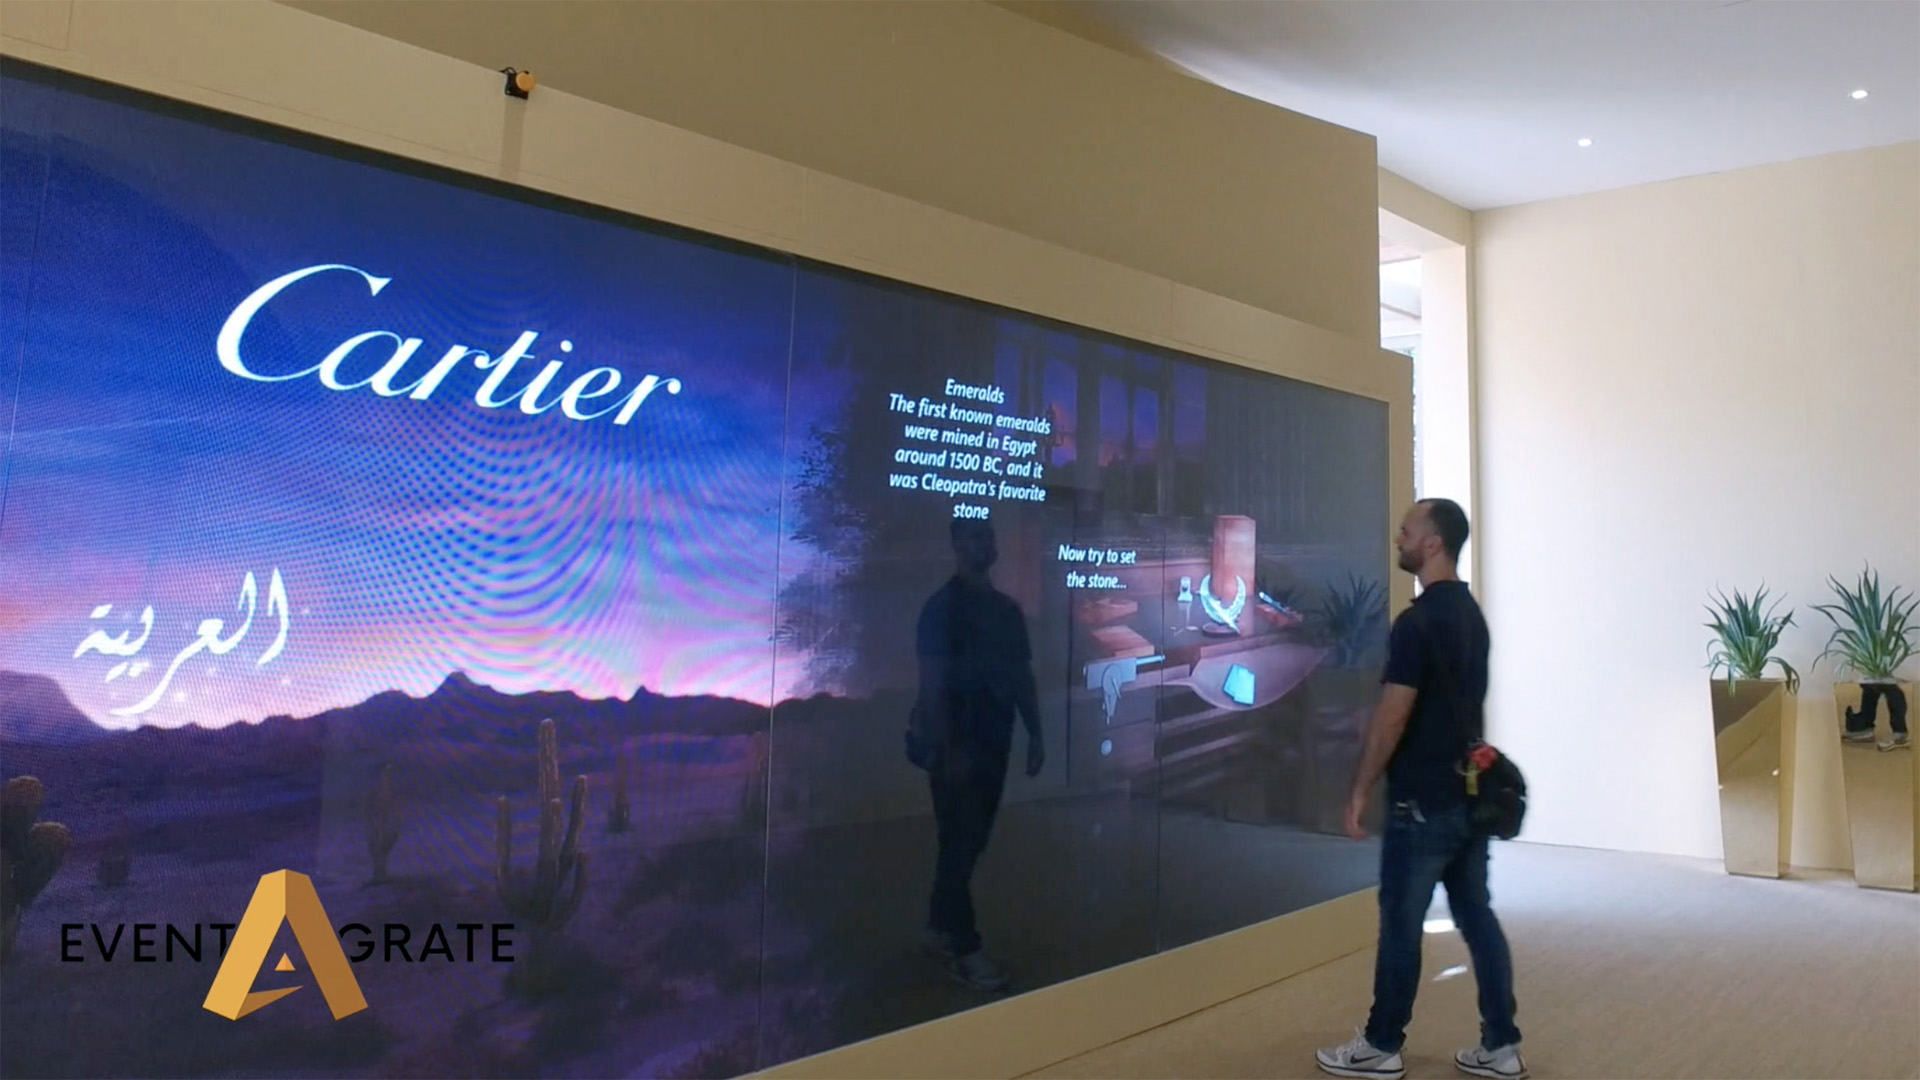 cartier eventagrate interactive technology tunnel touch wall entrance